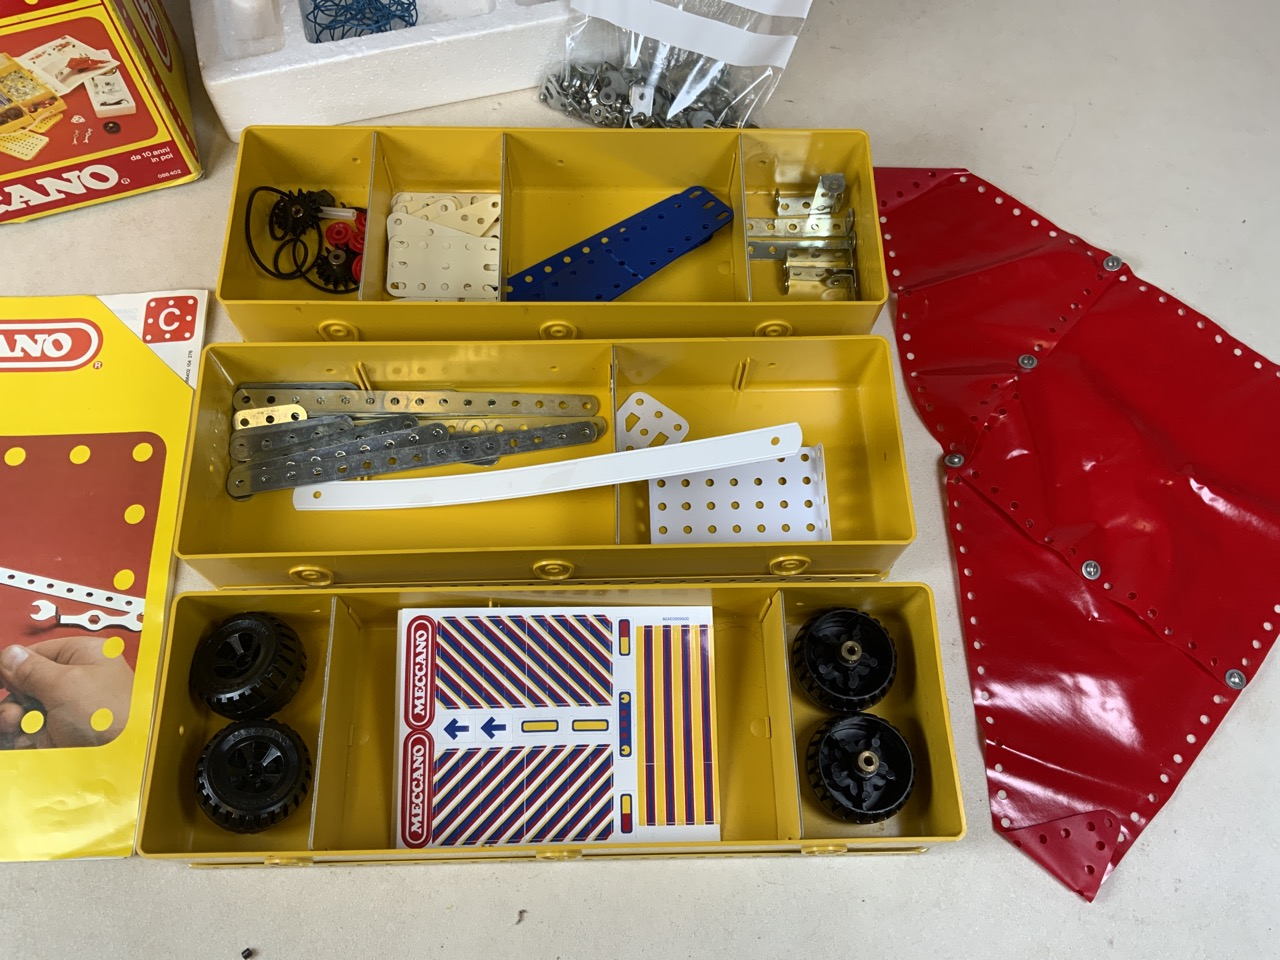 A Meccano C building kit. Three boxes, screws and instruction manuel. - Image 2 of 4